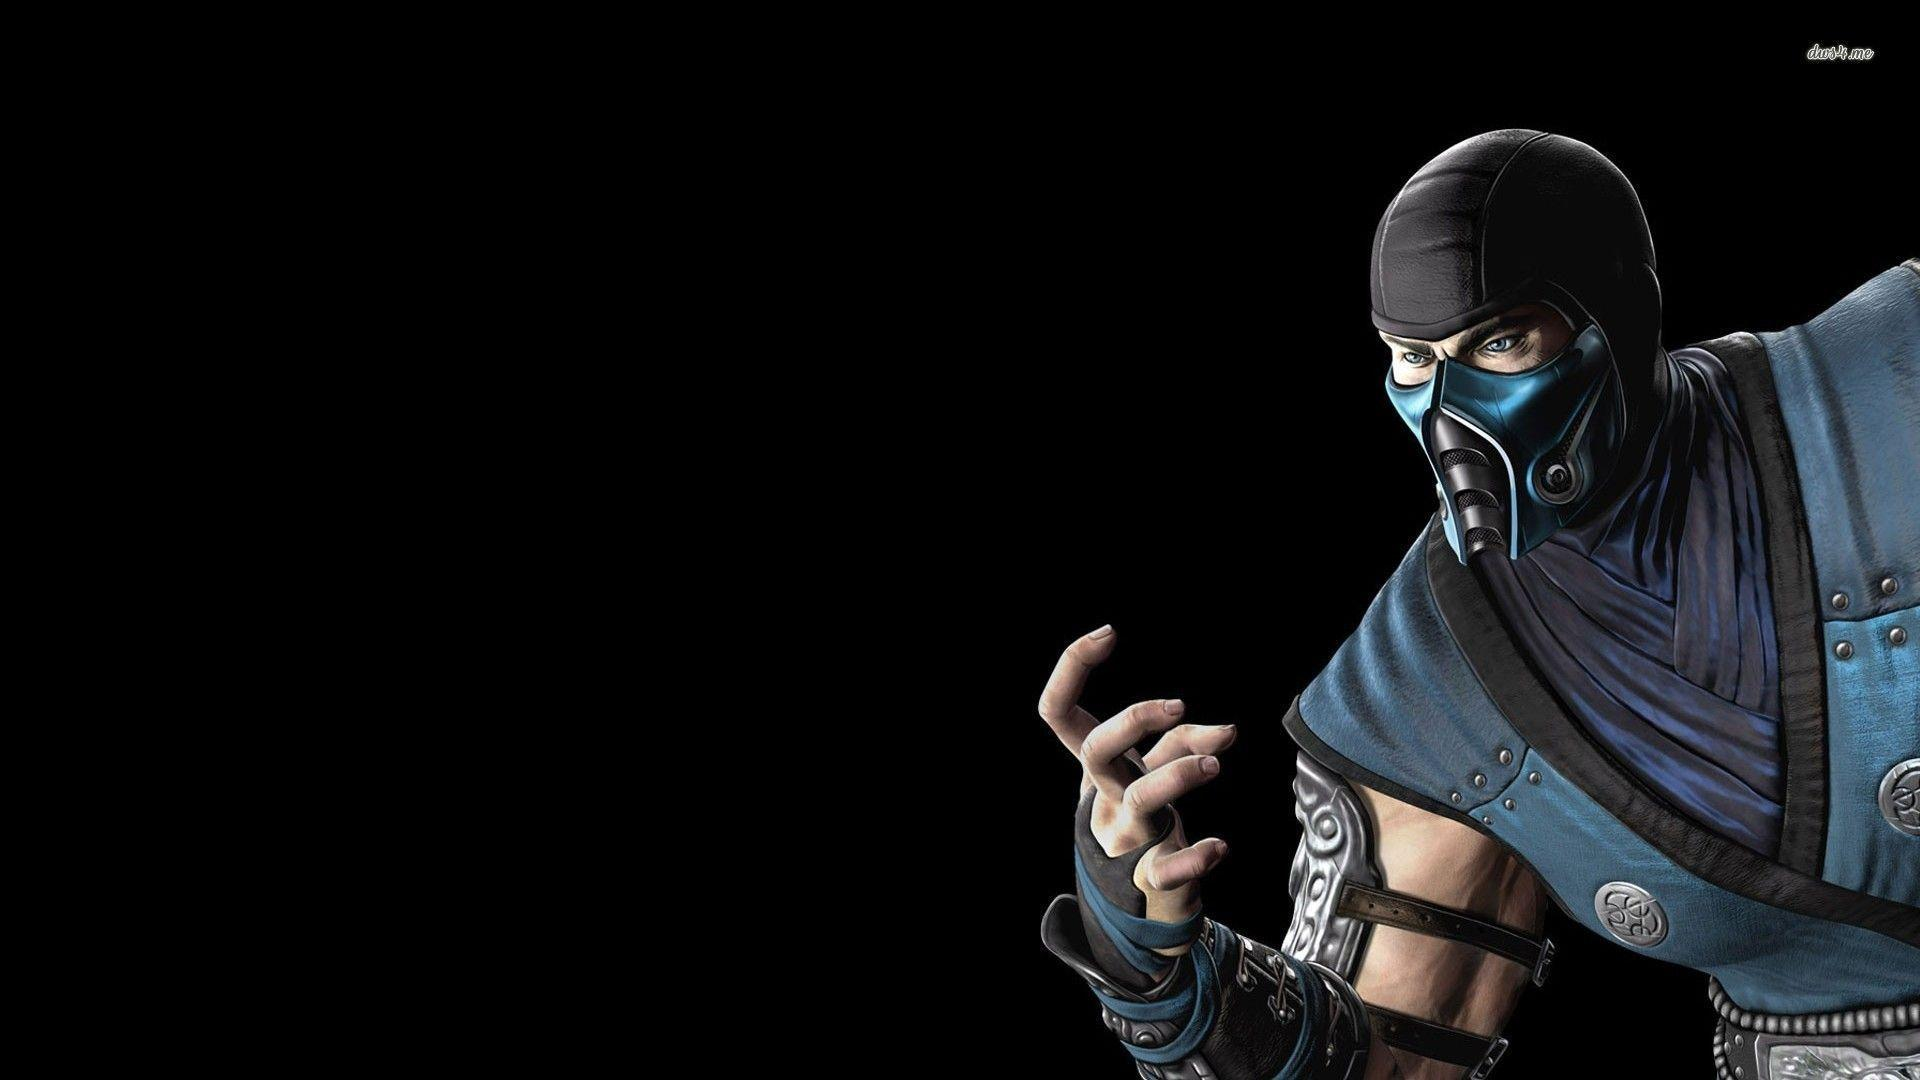 Sub Zero Wallpapers Group 55